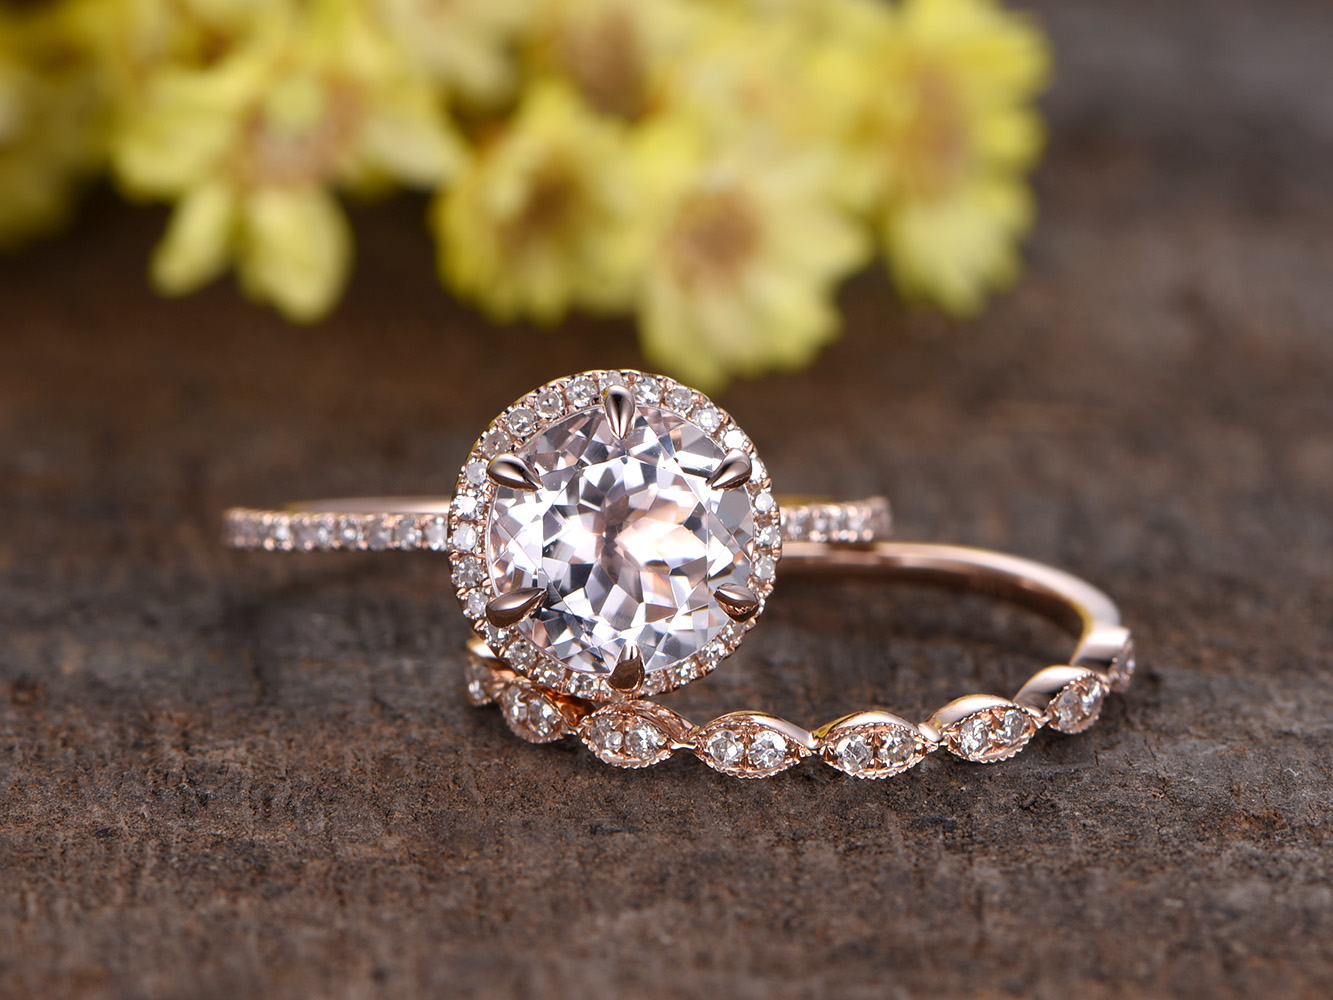 BBBGEM Jewelry Company Announces Outstanding Range Of Morganite Engagement Rings for Couples